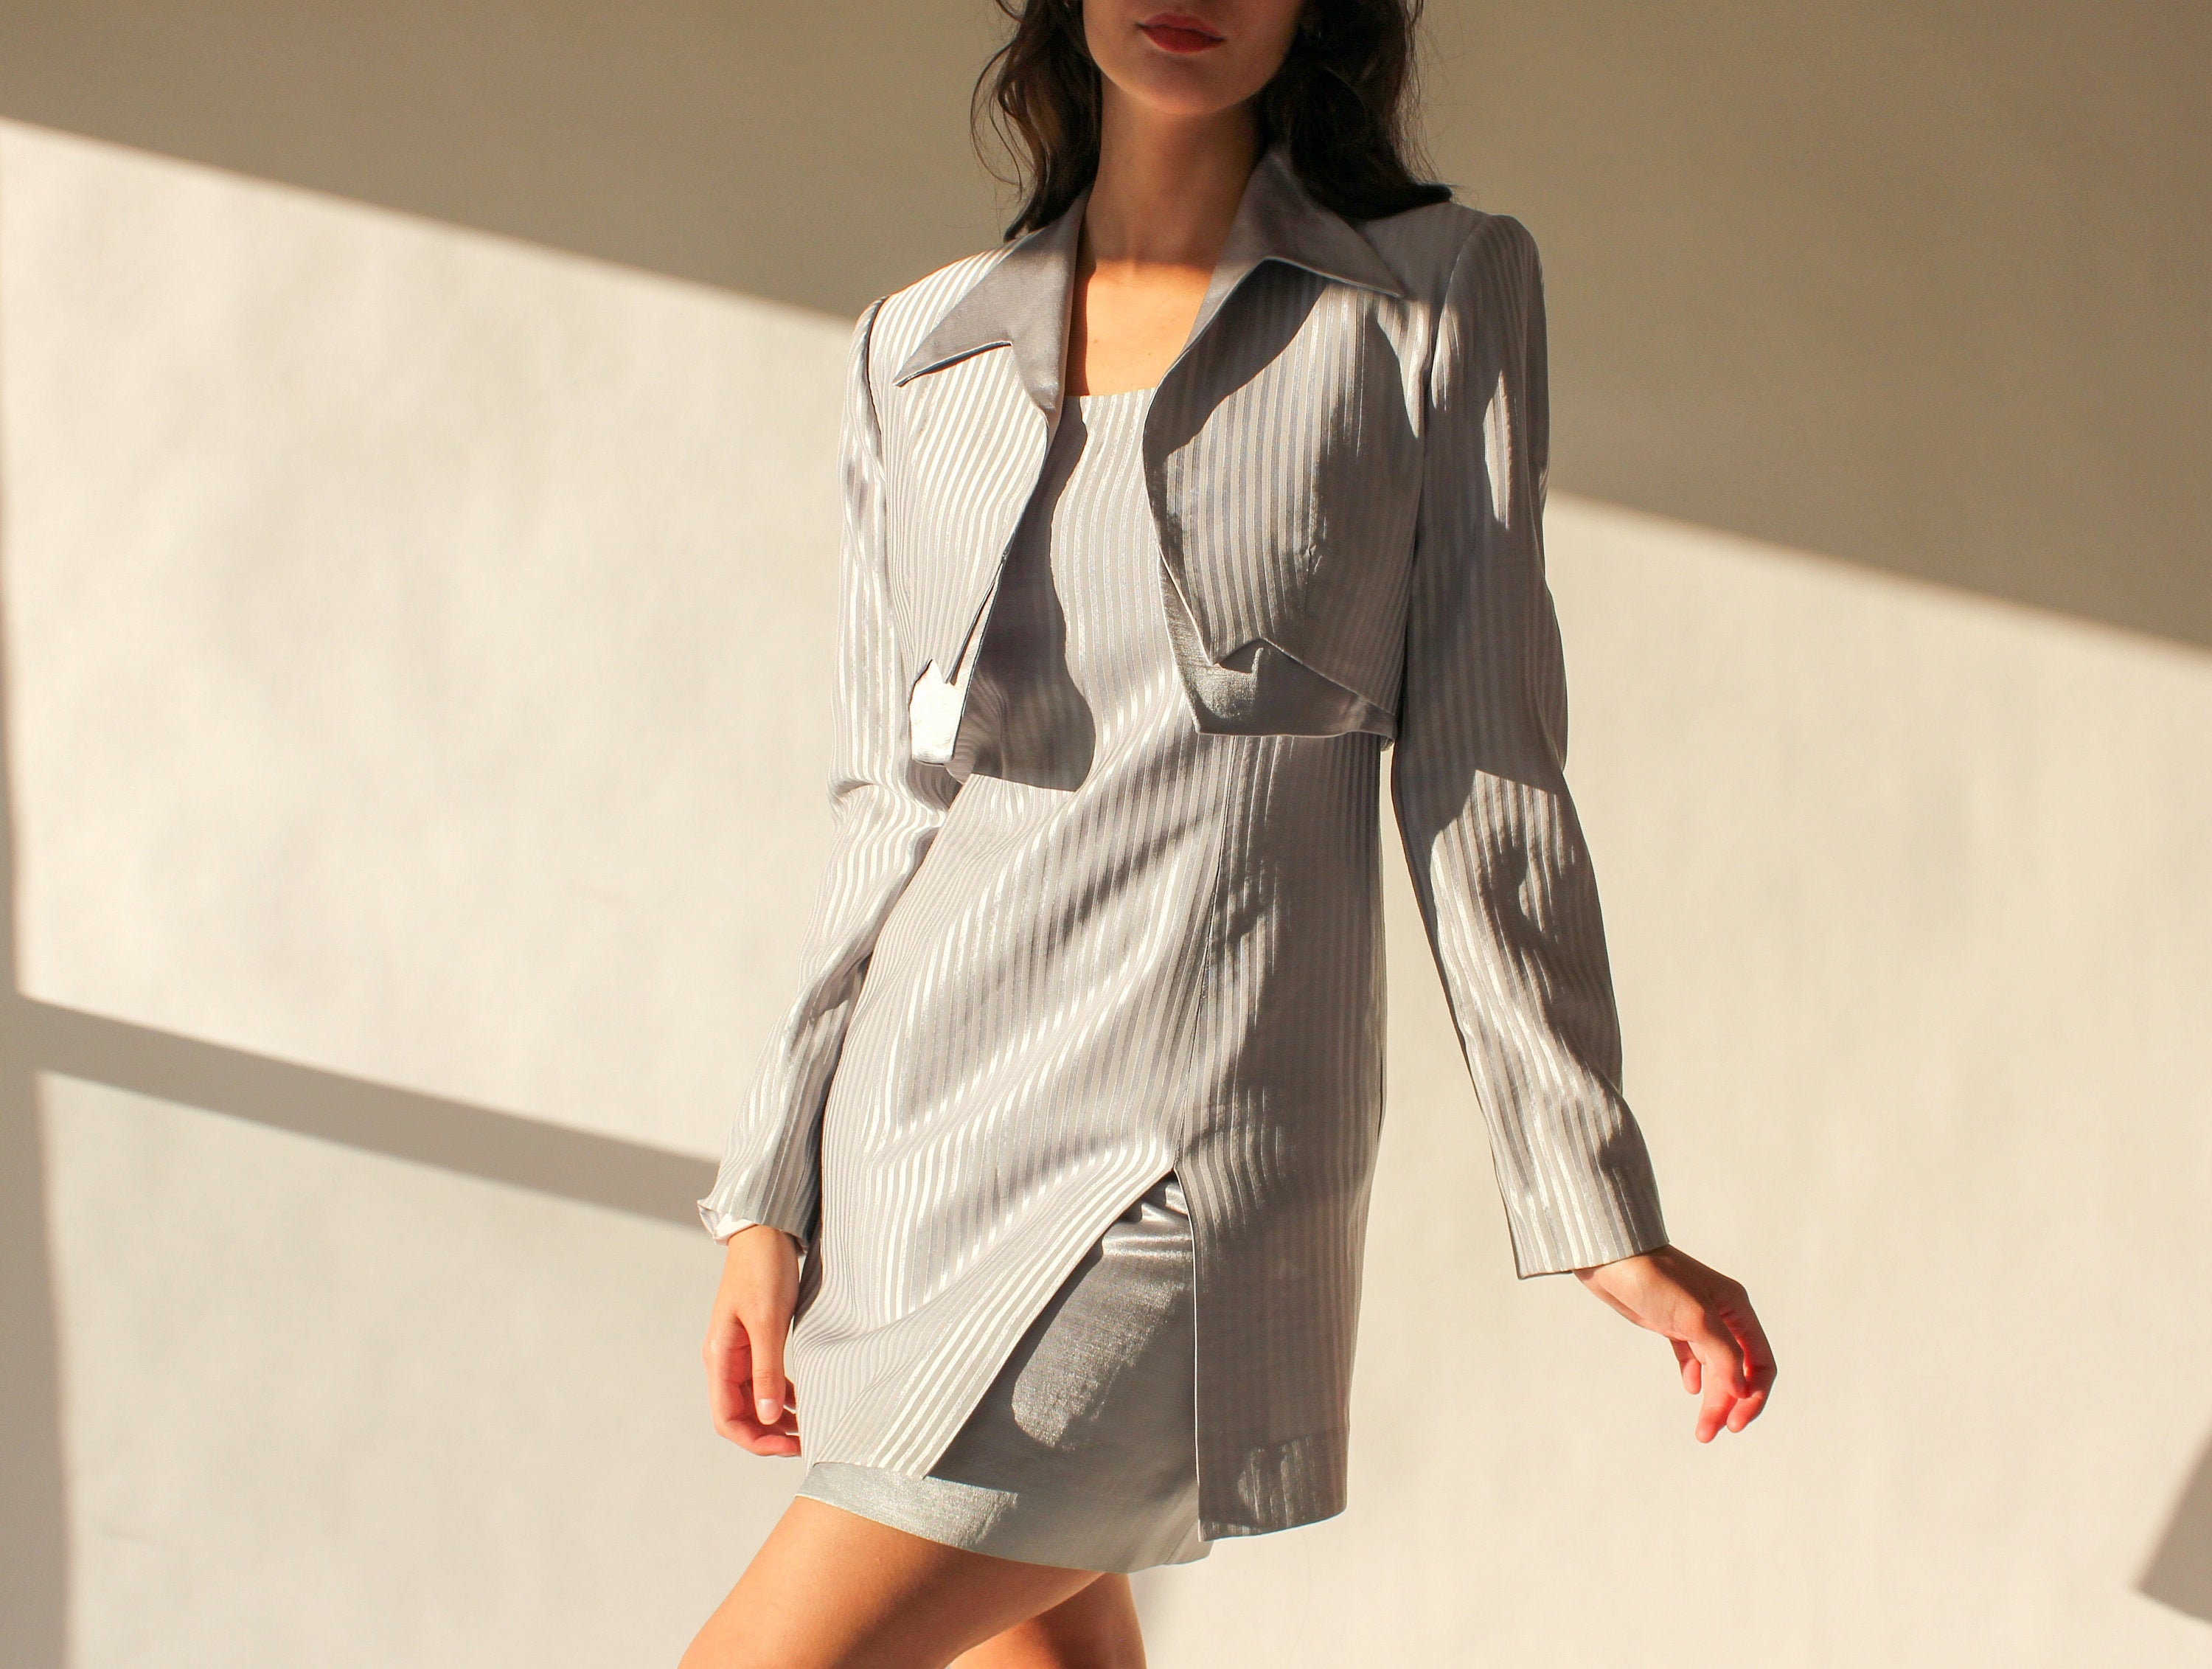 80s Dresses | Casual to Party Dresses Vintage 80S 90S Alberto Makali Silver Striped Sheath Dress  Bolero Two Piece Set  Made in Usa 1980S 1990S Designer Power Blazer Suit $22.95 AT vintagedancer.com